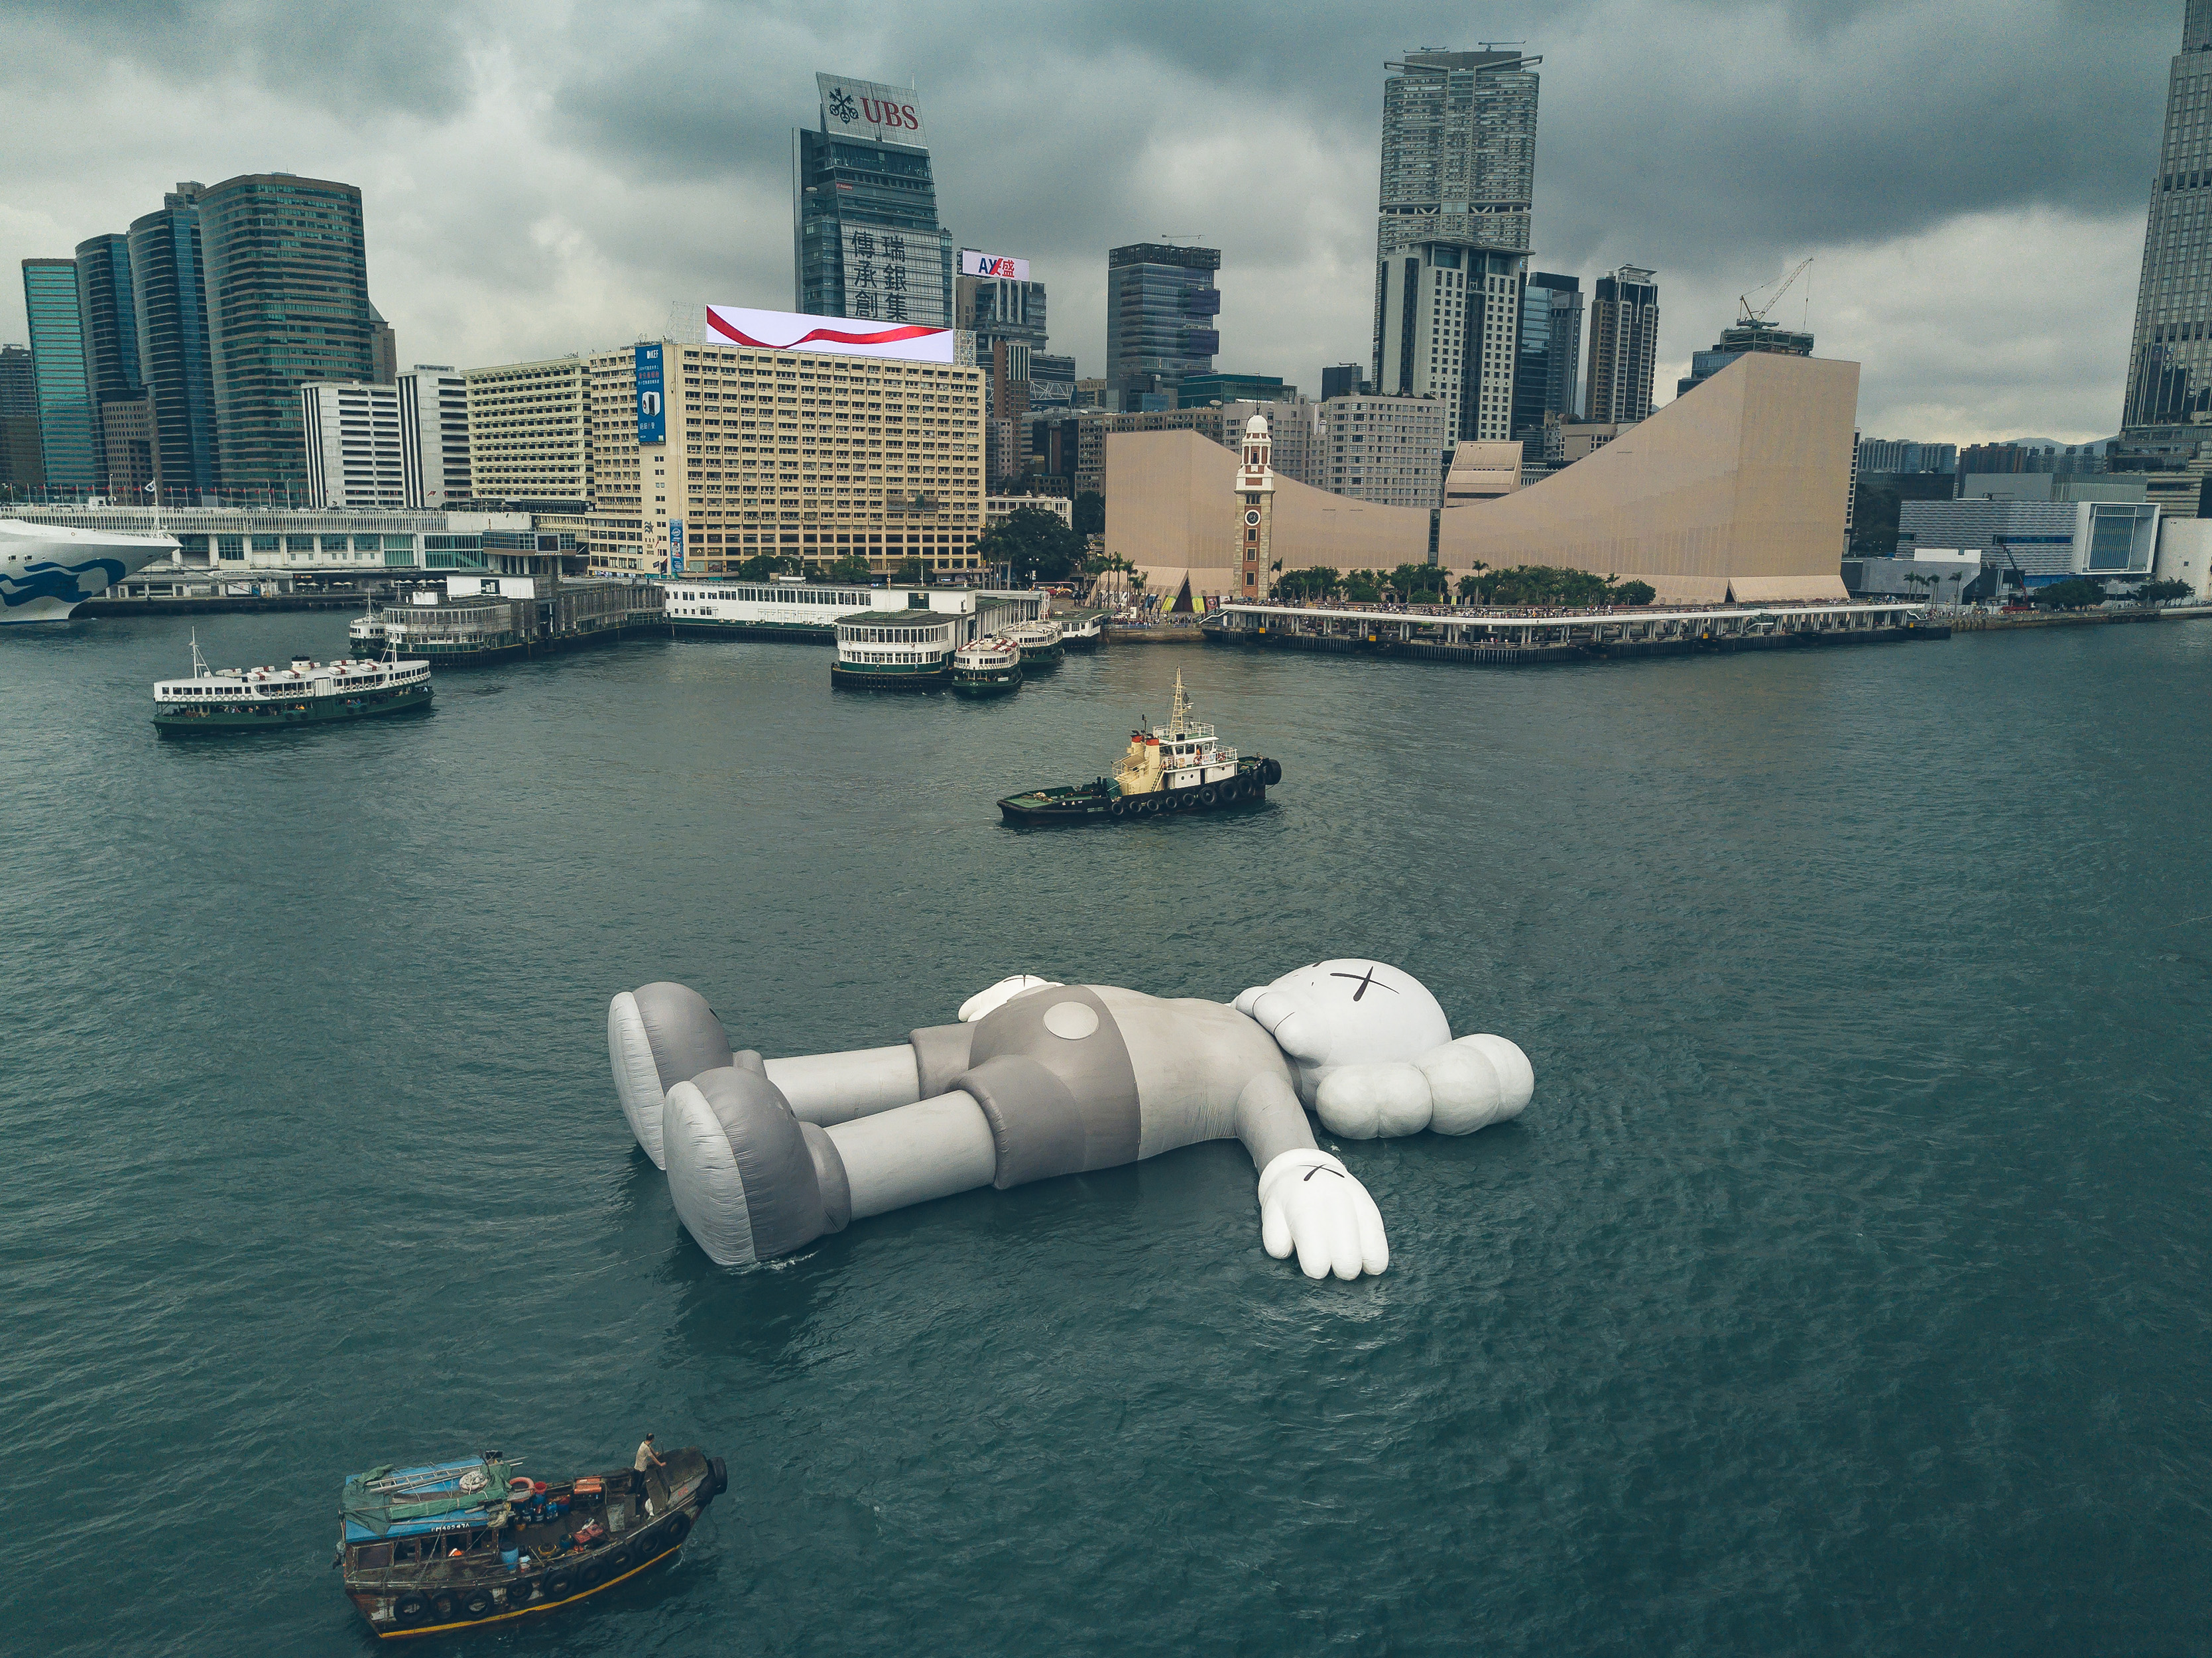 KAWS' sculpture 'Companion' floats in Victoria Harbor in Hong Kong on March 22, 2019.